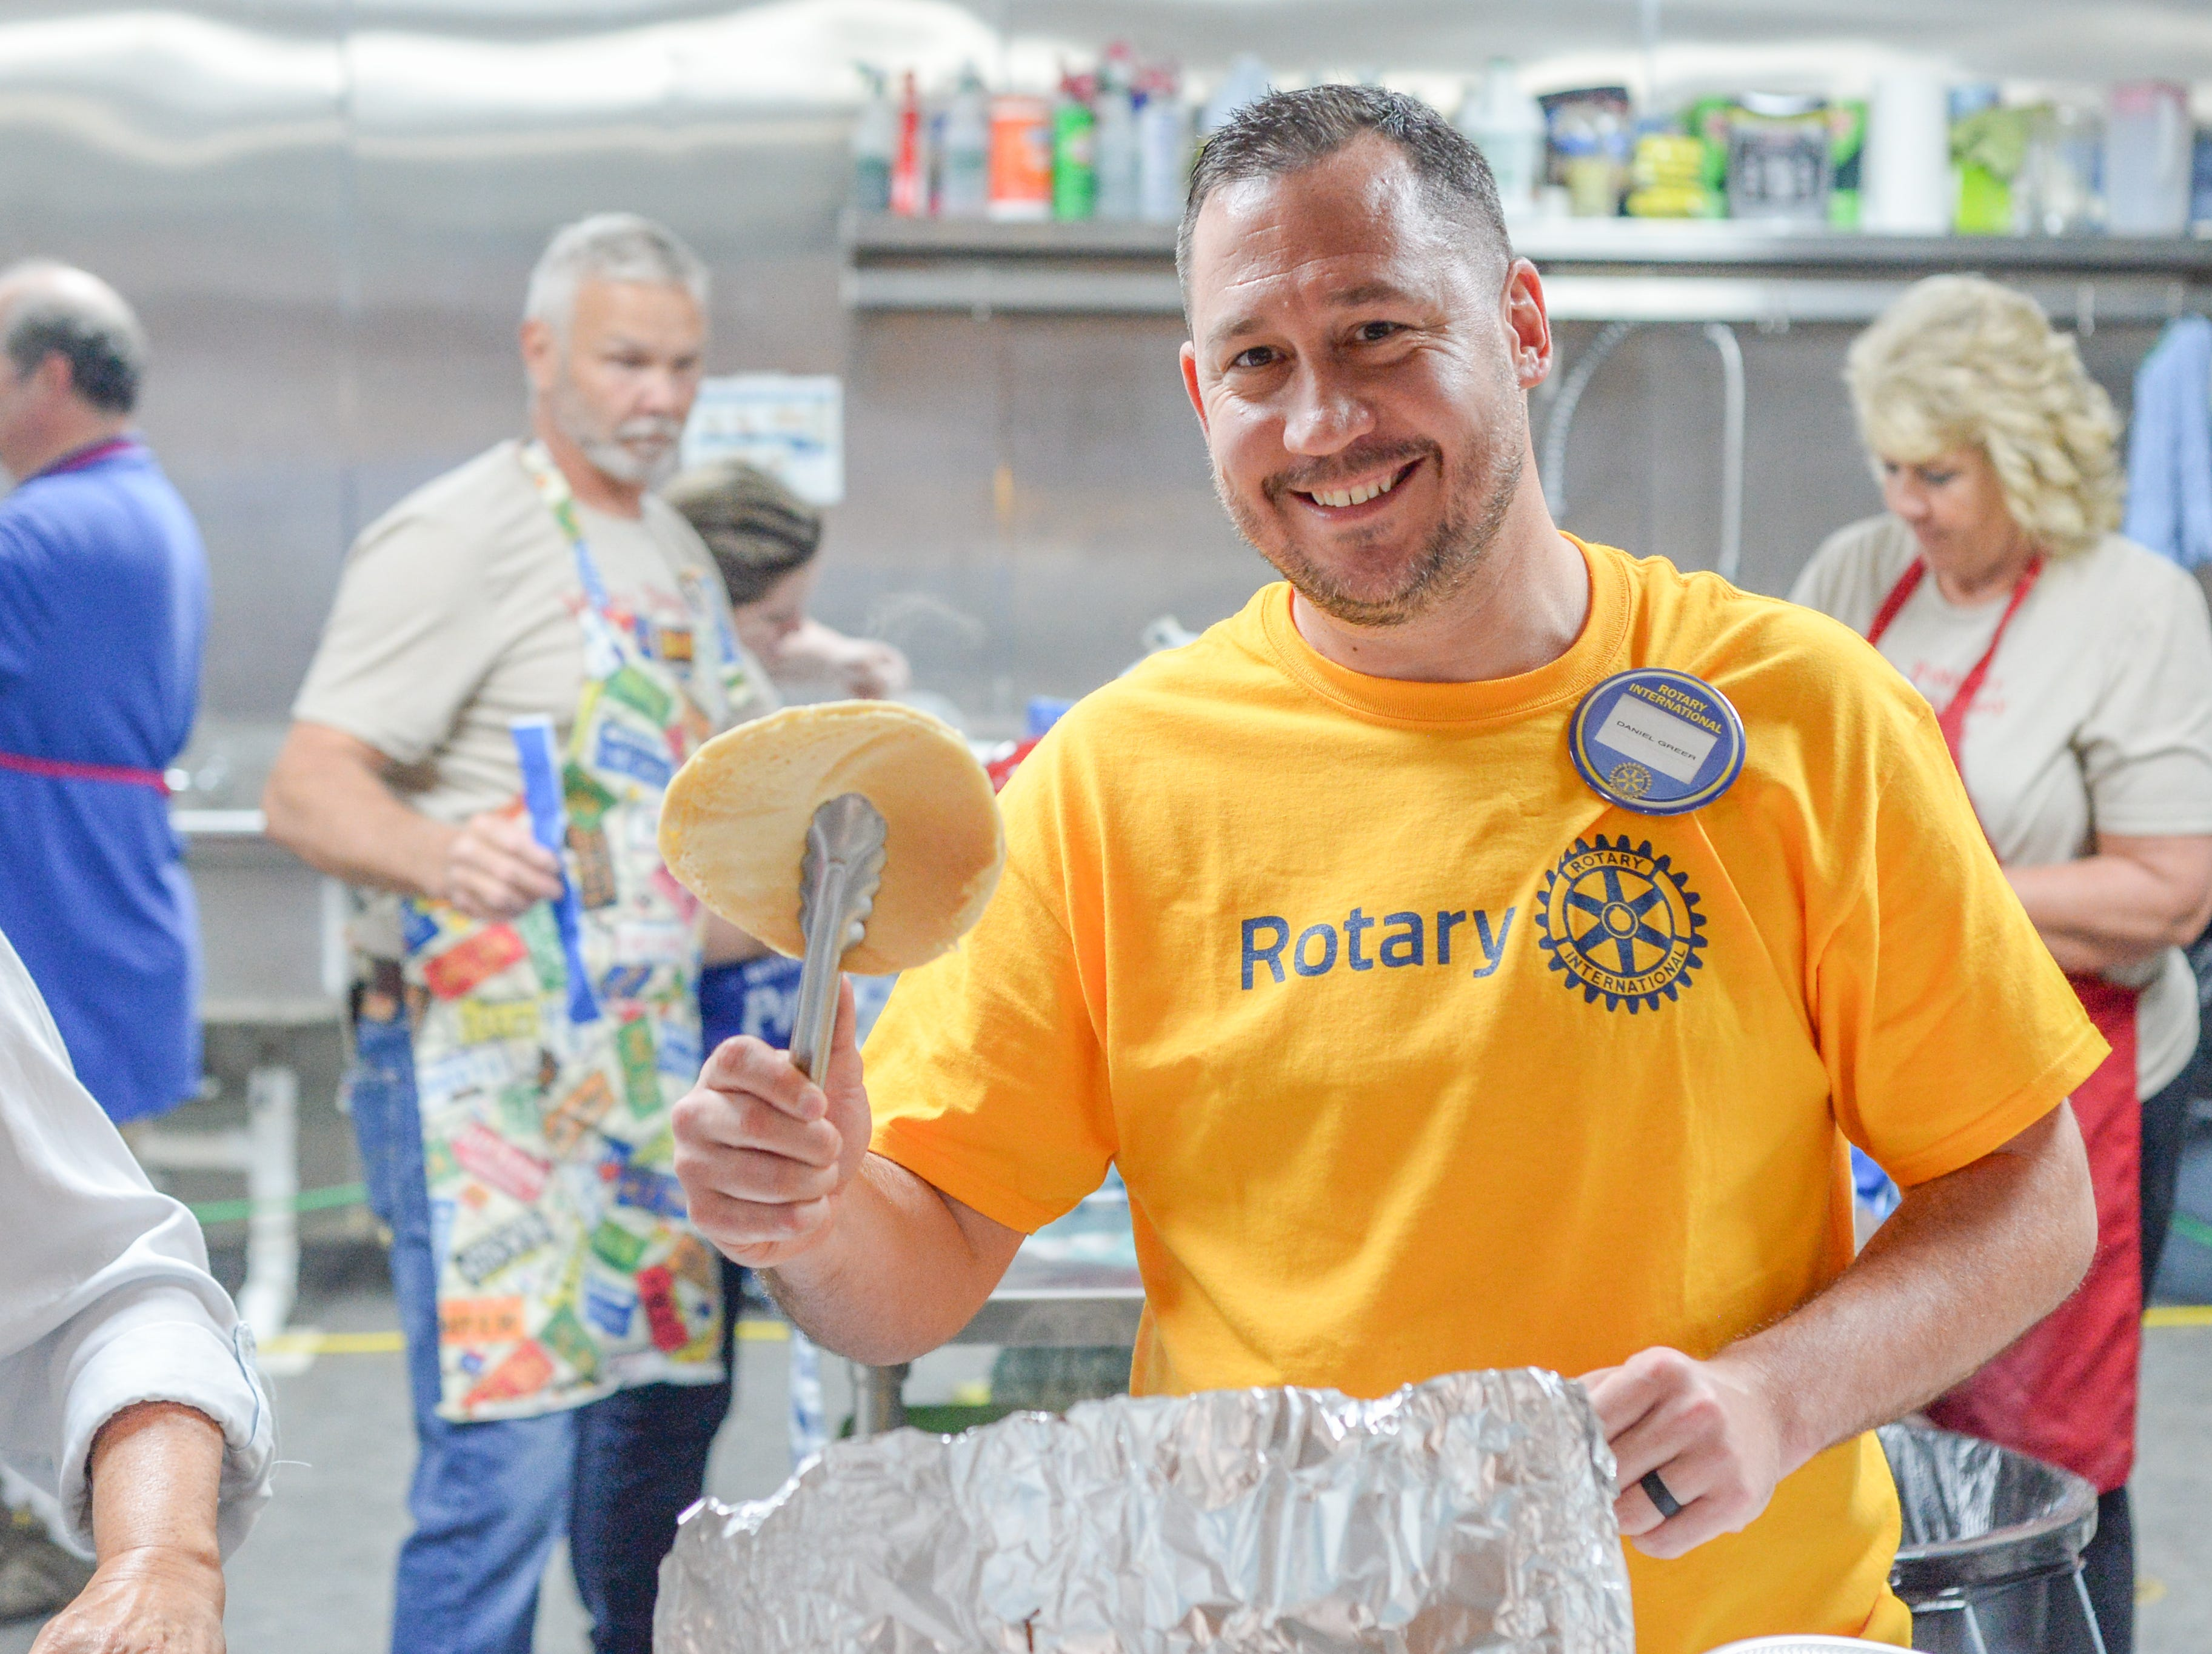 Daniel Greer helps with the Strawberry Festival Pancake Breakfast & Silent Auction presented by the Portland Rotary Club & Portland FFA at First Baptist Church Portland on Saturday, May 11.